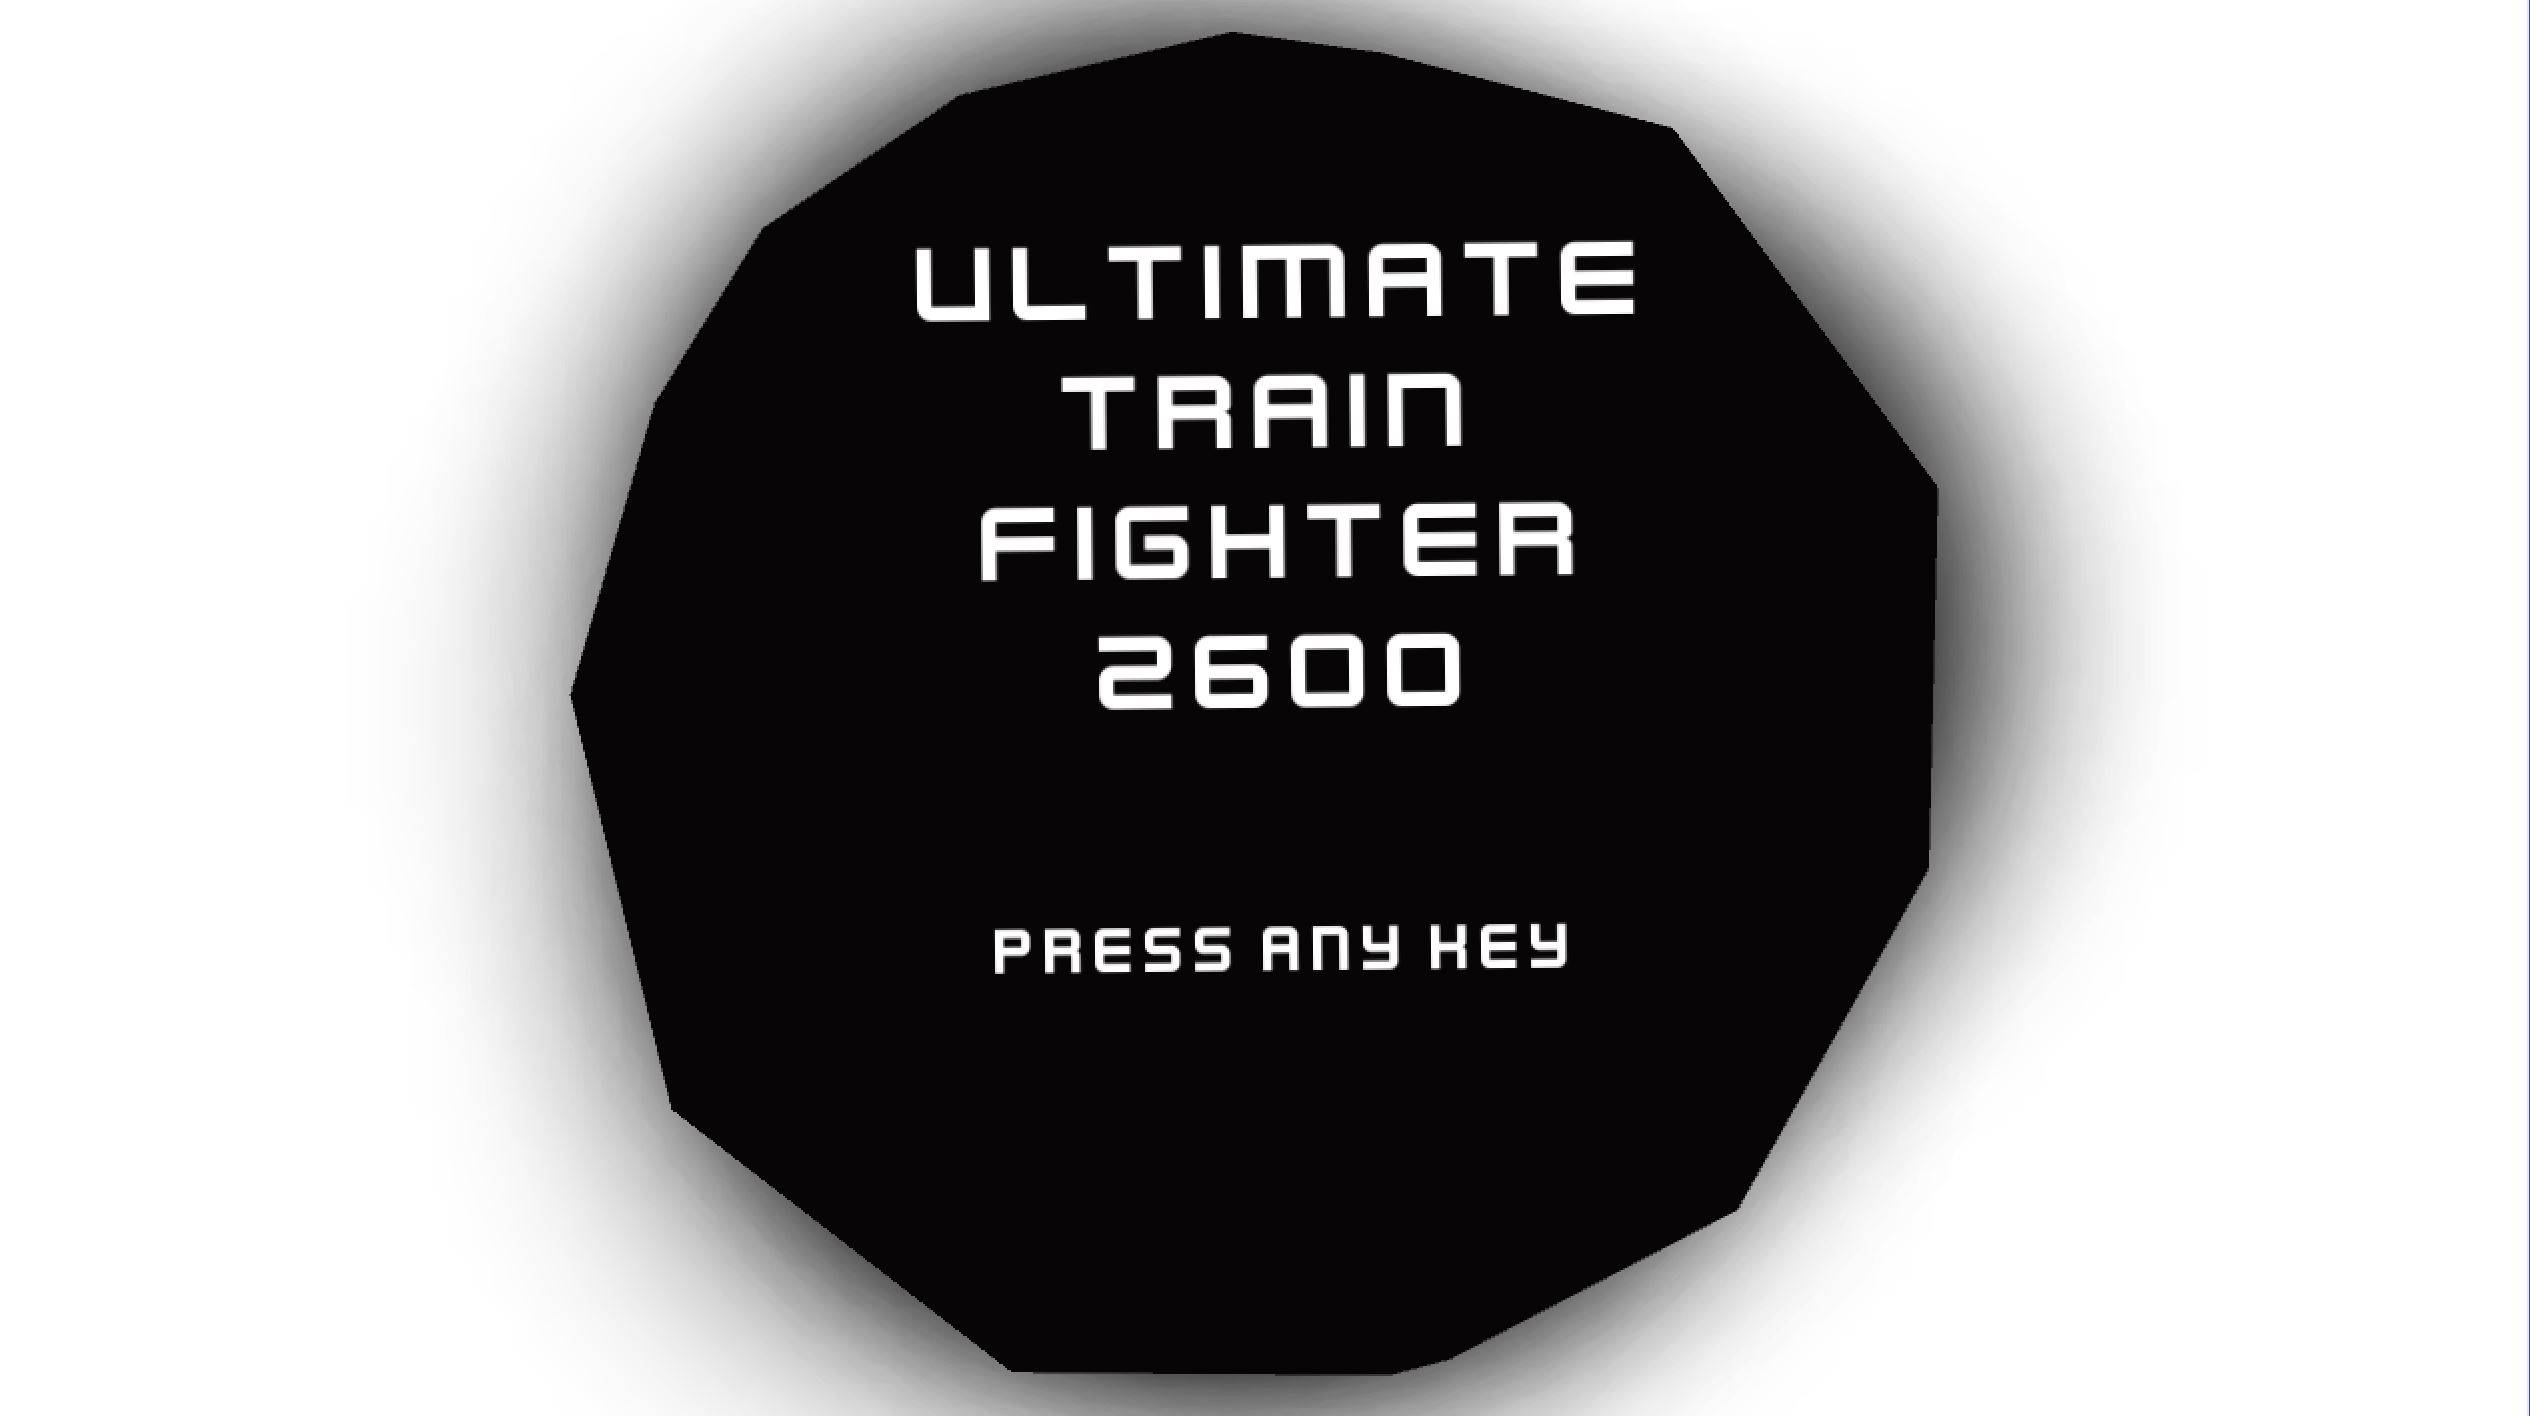 Ultimate Train Fighter 2600